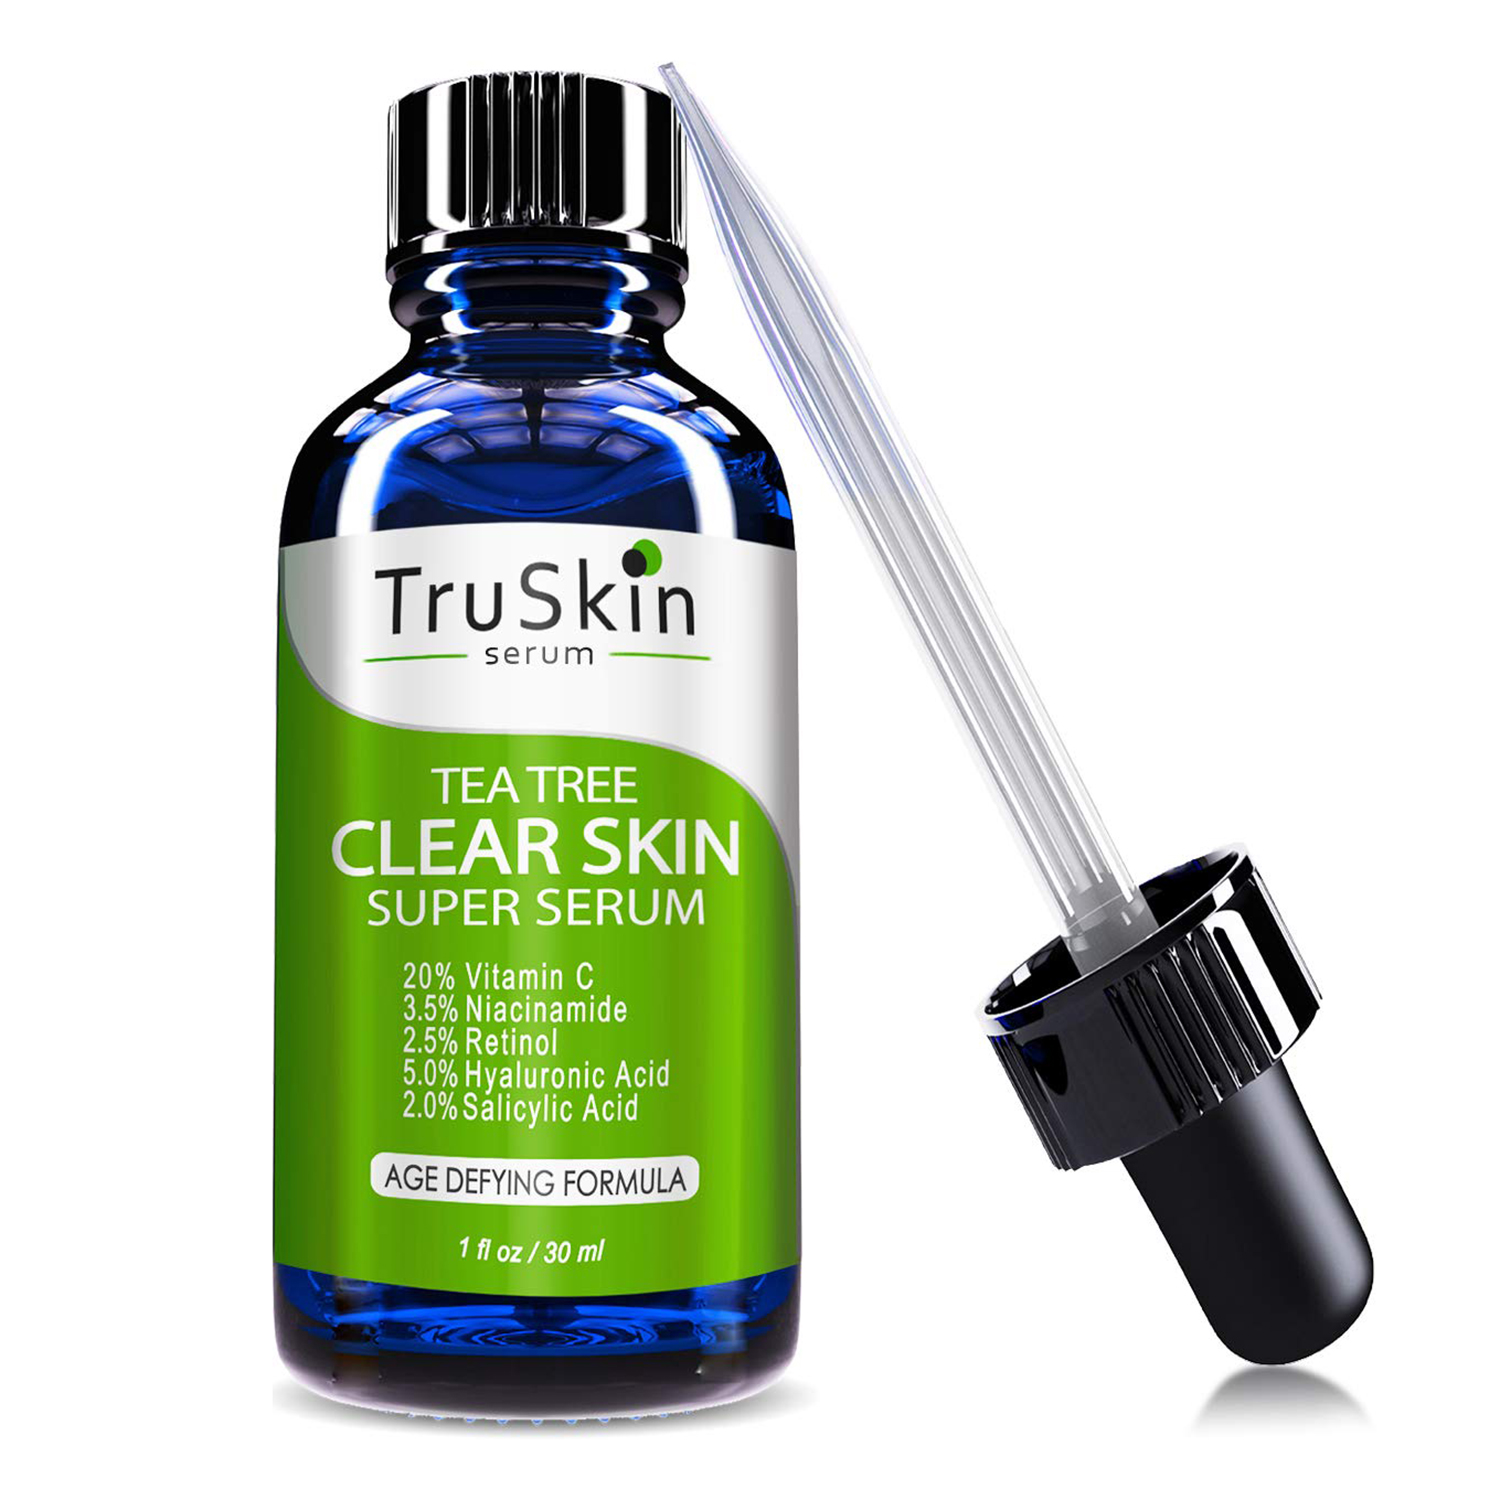 TruSkin Tea Tree Clear Skin Serum with Vitamin C